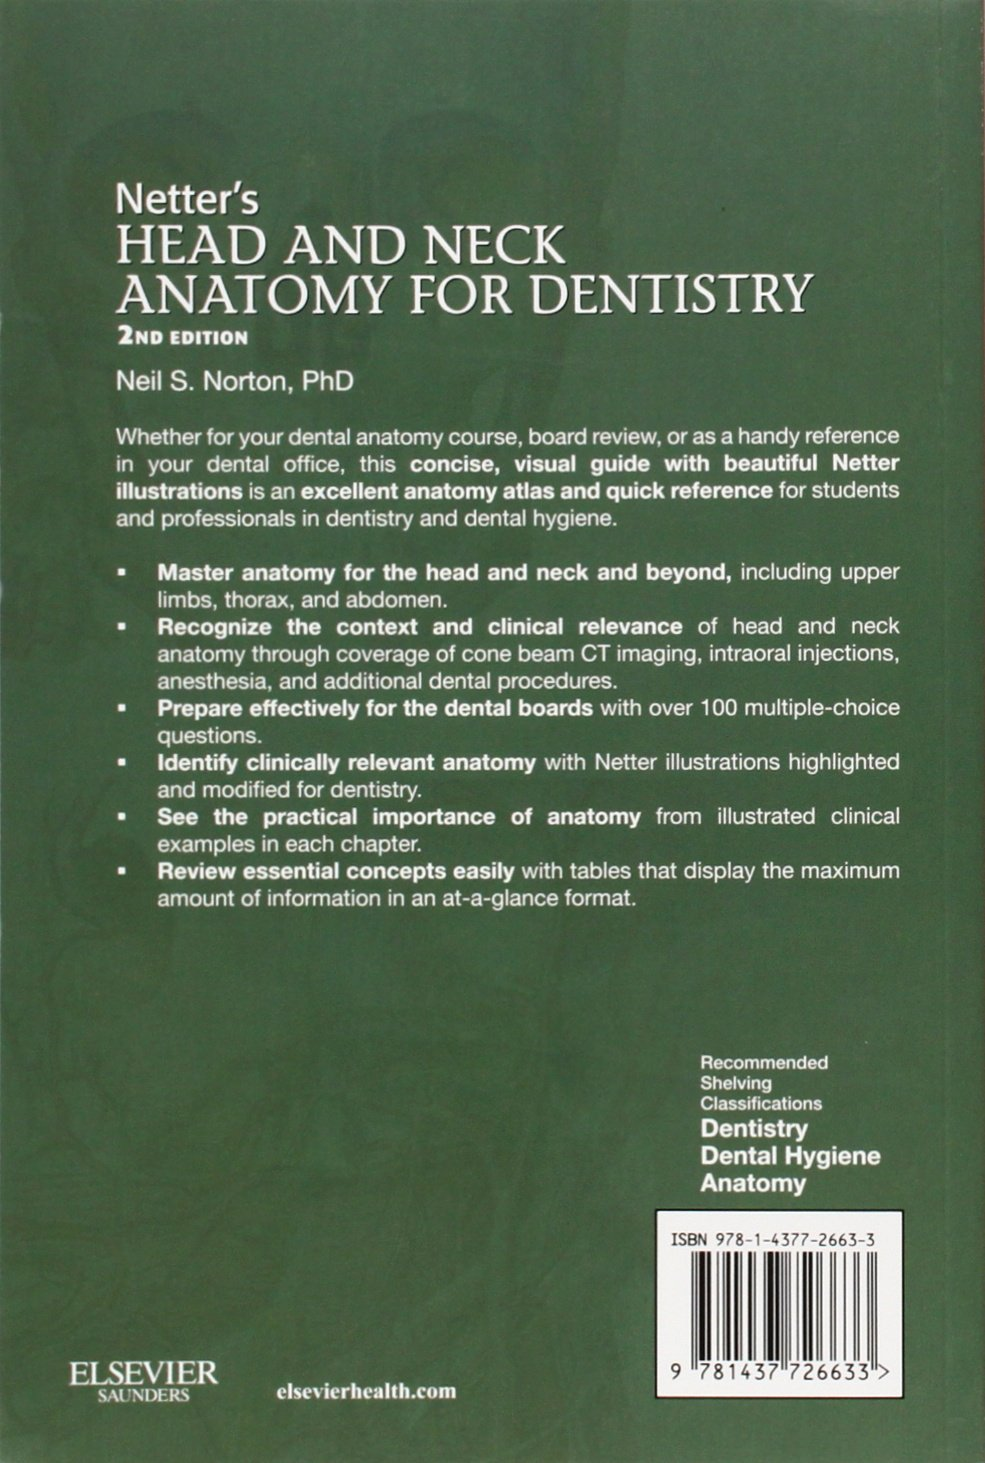 Netter\'s Head and Neck Anatomy for Dentistry: Amazon.co.uk: Neil S ...